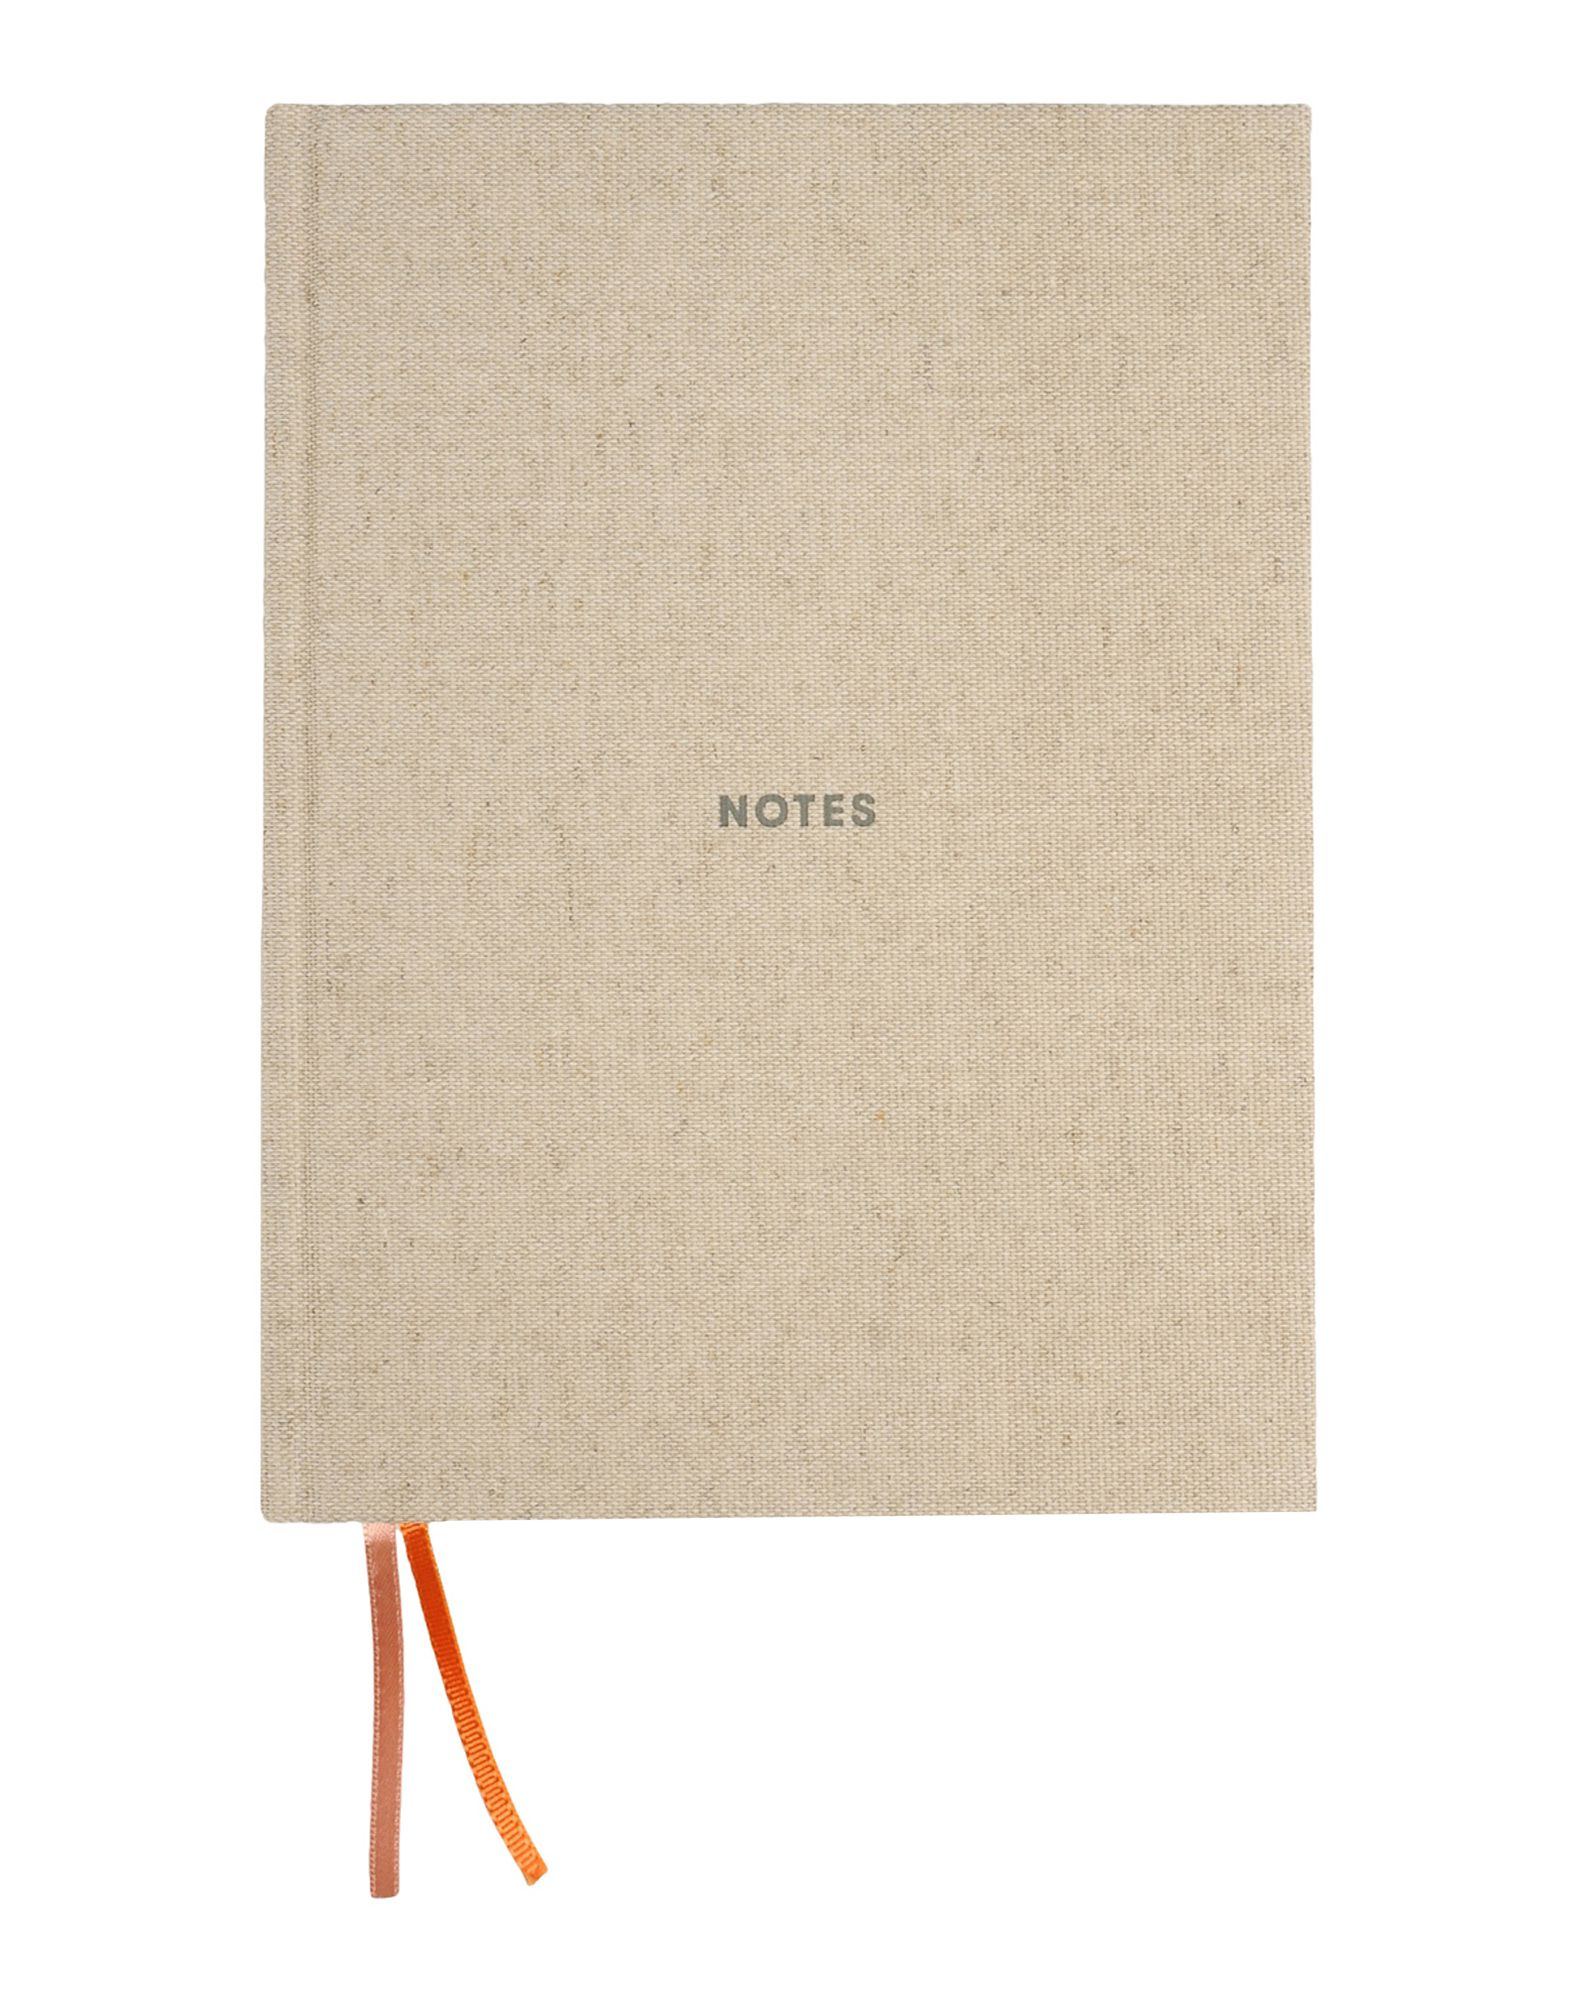 HAY Notebooks  Item 51120963 1